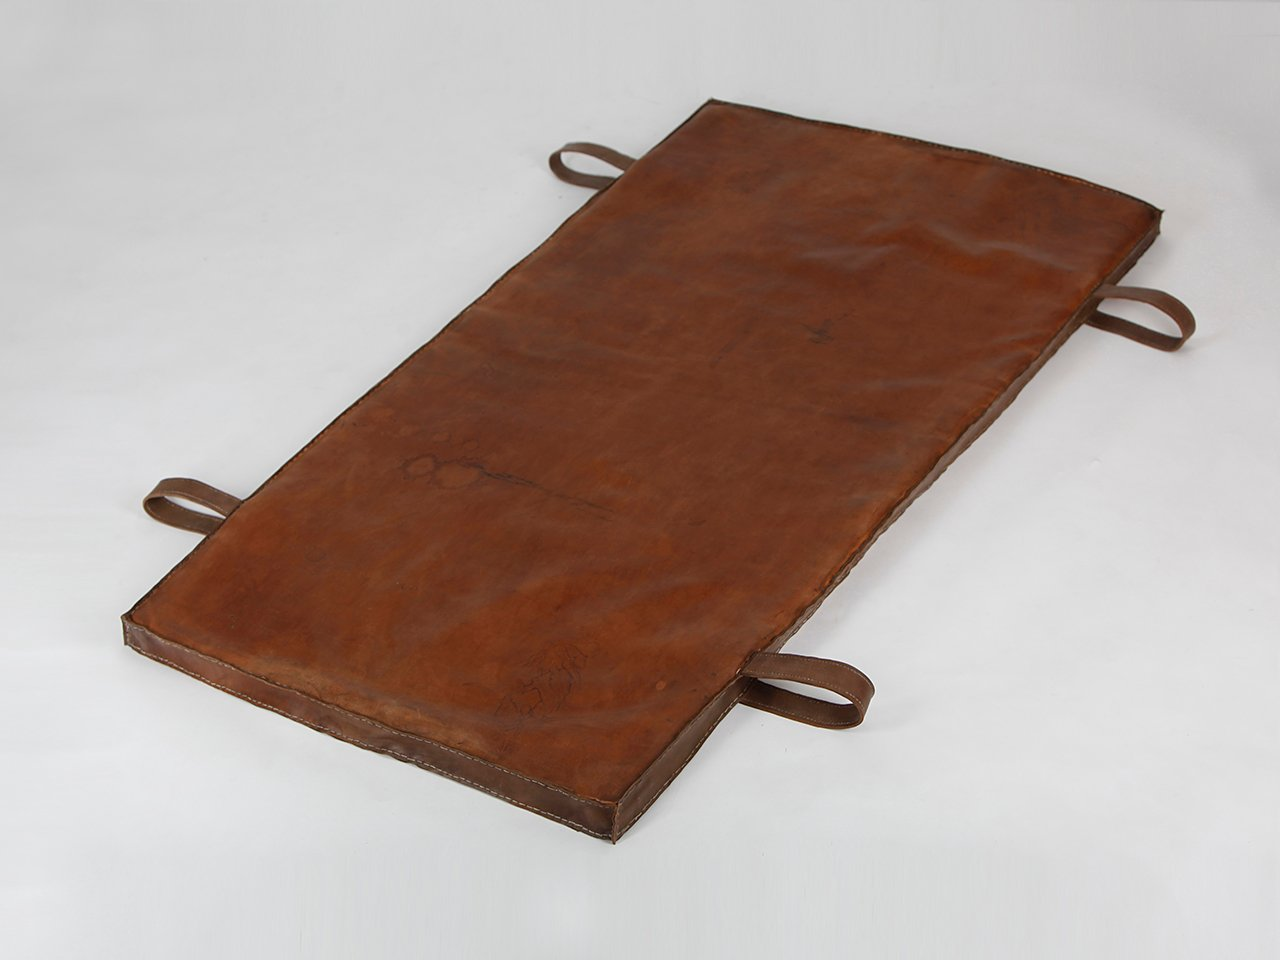 vintage czech gymnastics mat in brown leather 1940s